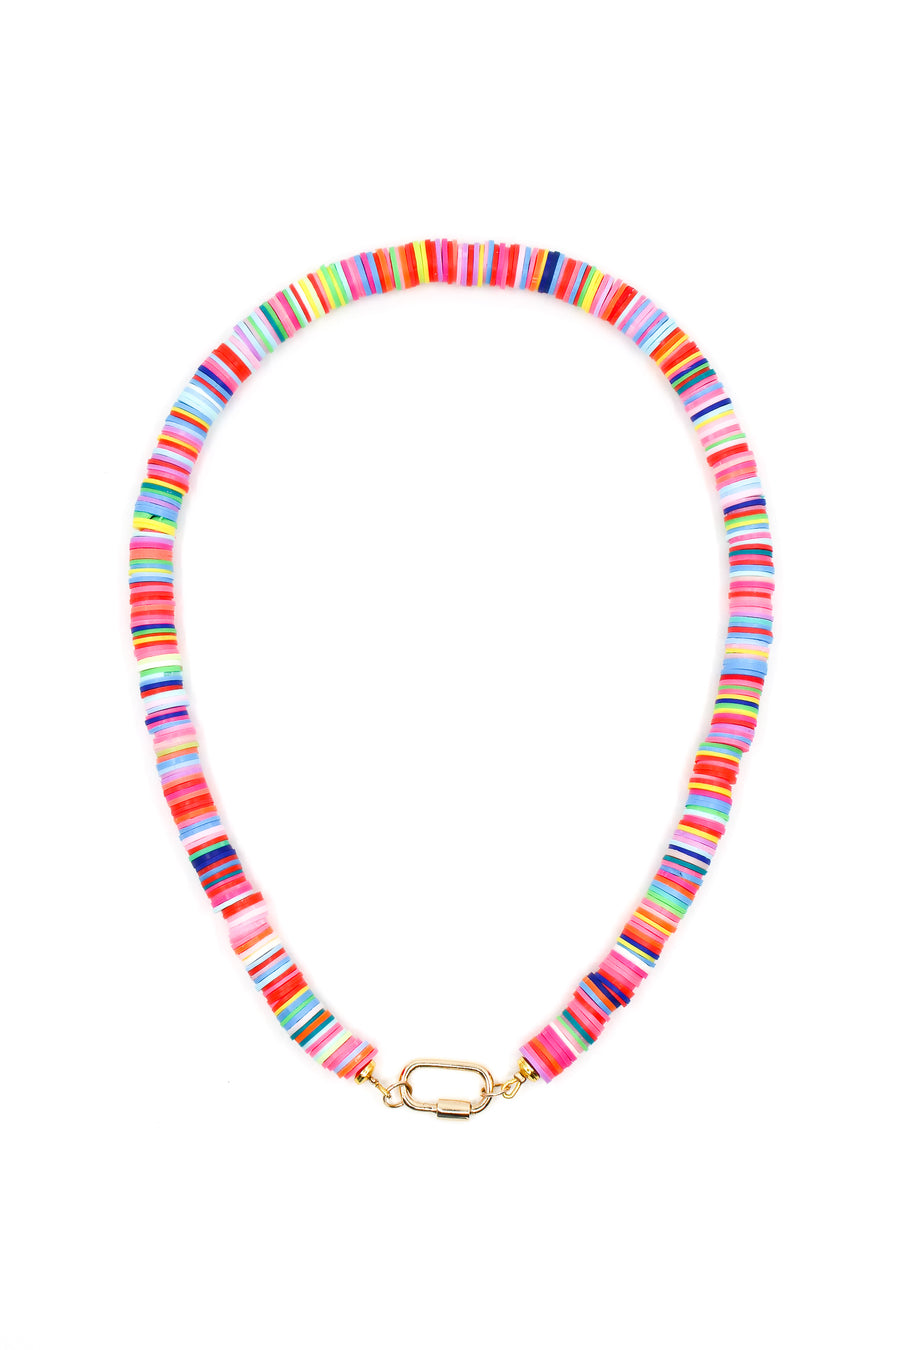 Multicolor Disk Clasp Necklace - 14kt gold - Monisha Melwani Jewelry